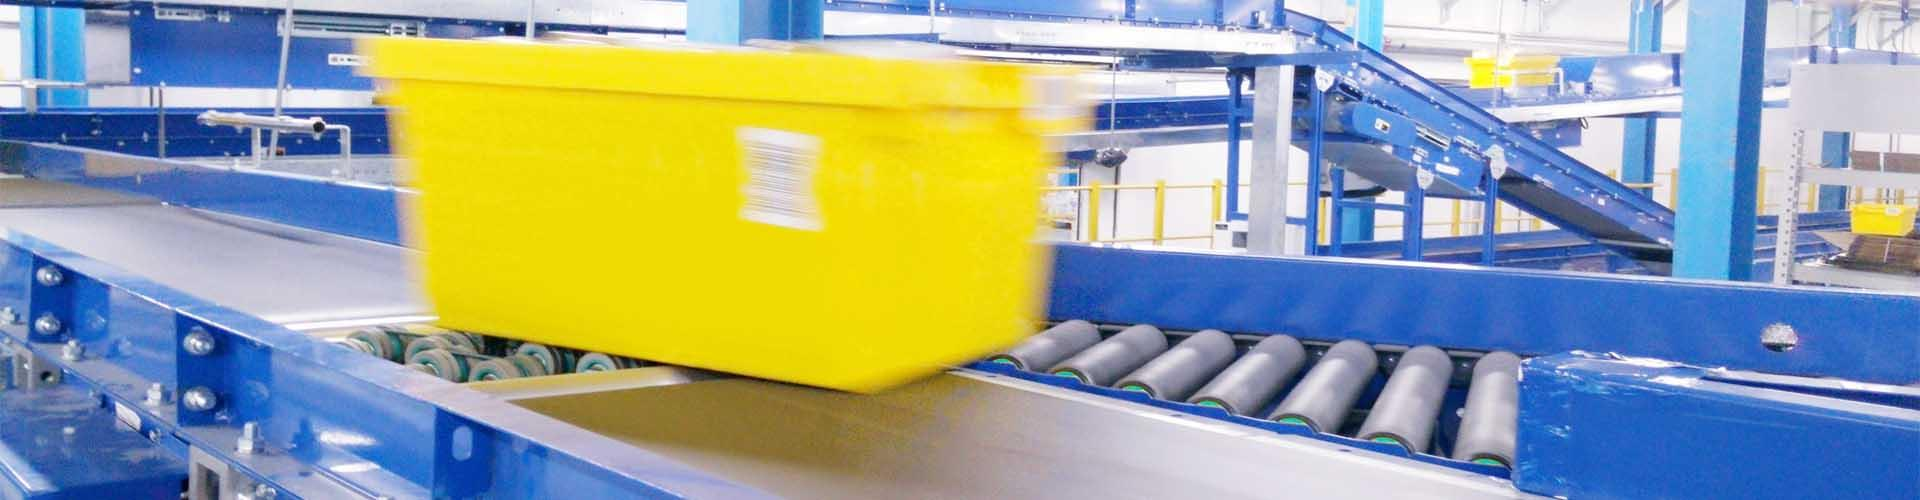 D30-SW Swivel Wheel Sorter